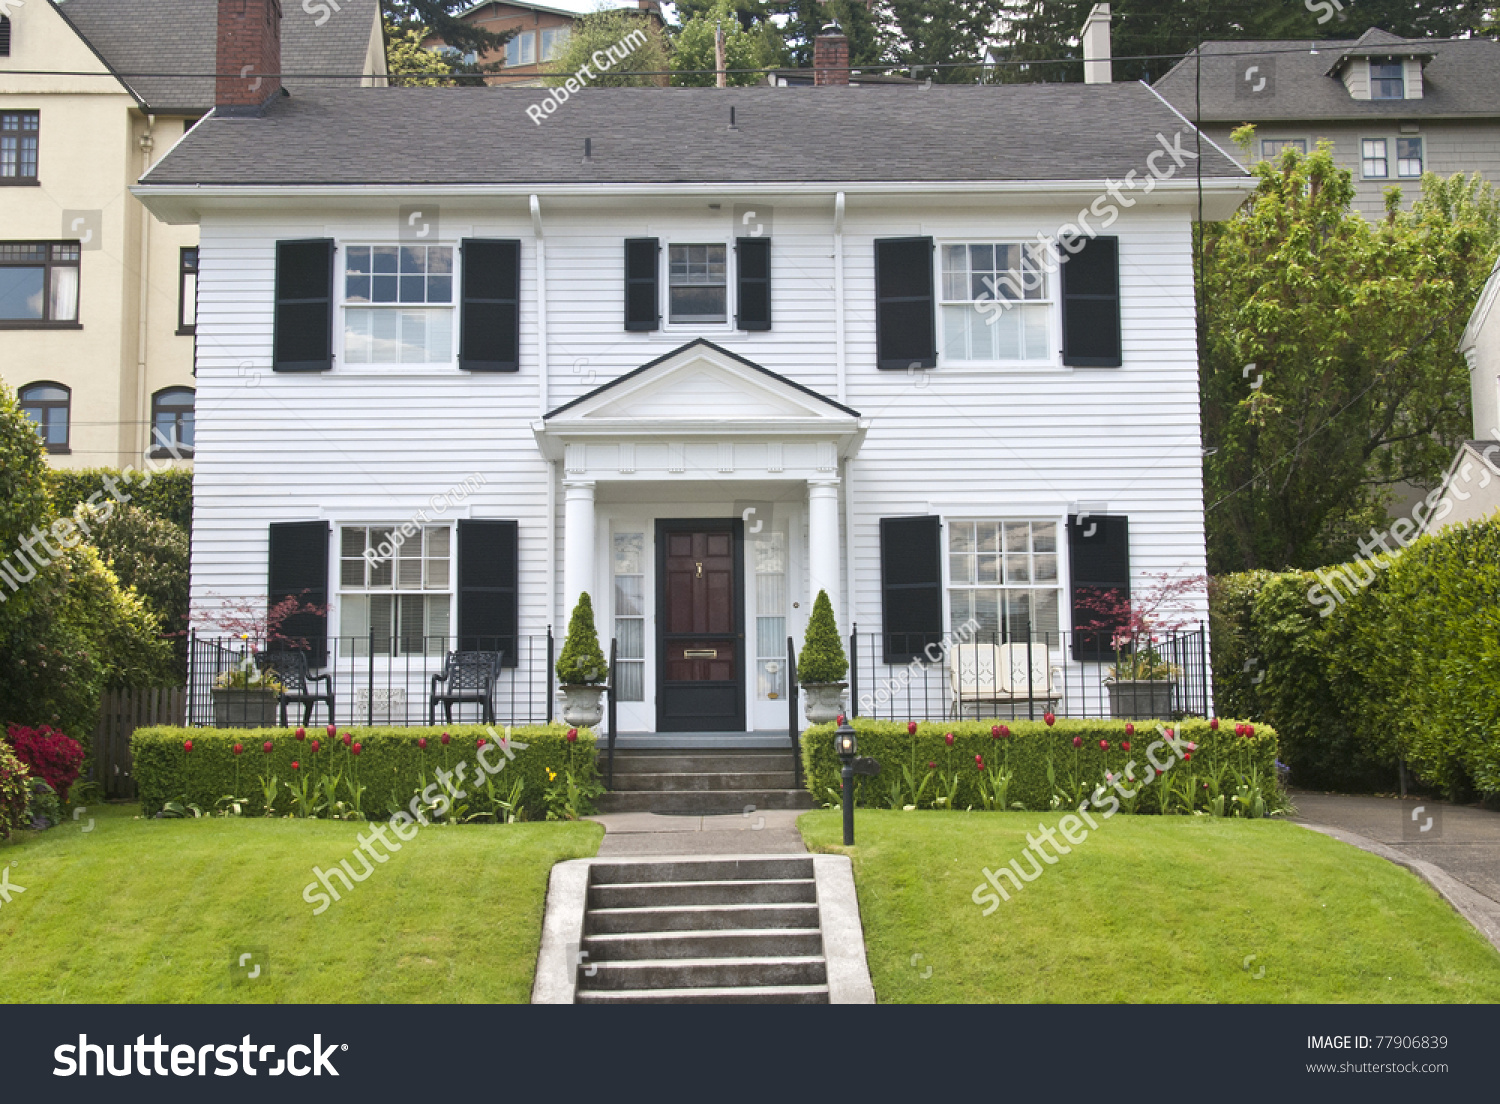 Classic american wooden clapboard house stock photo for American classic house mouse